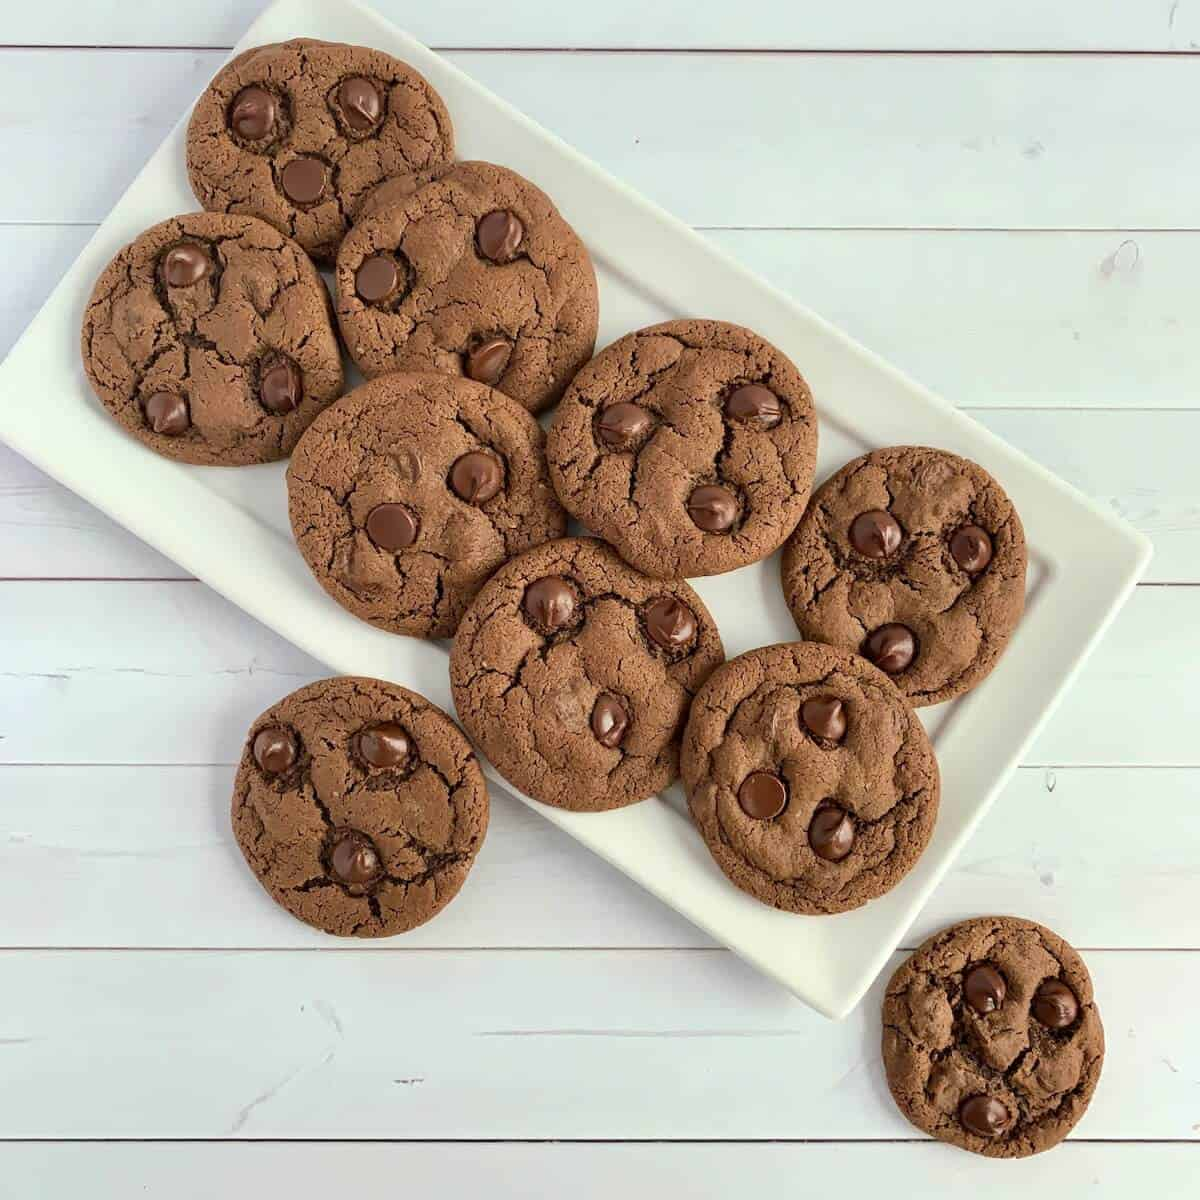 Chocolate Chocolate Chip cookies on white tray from overhead.